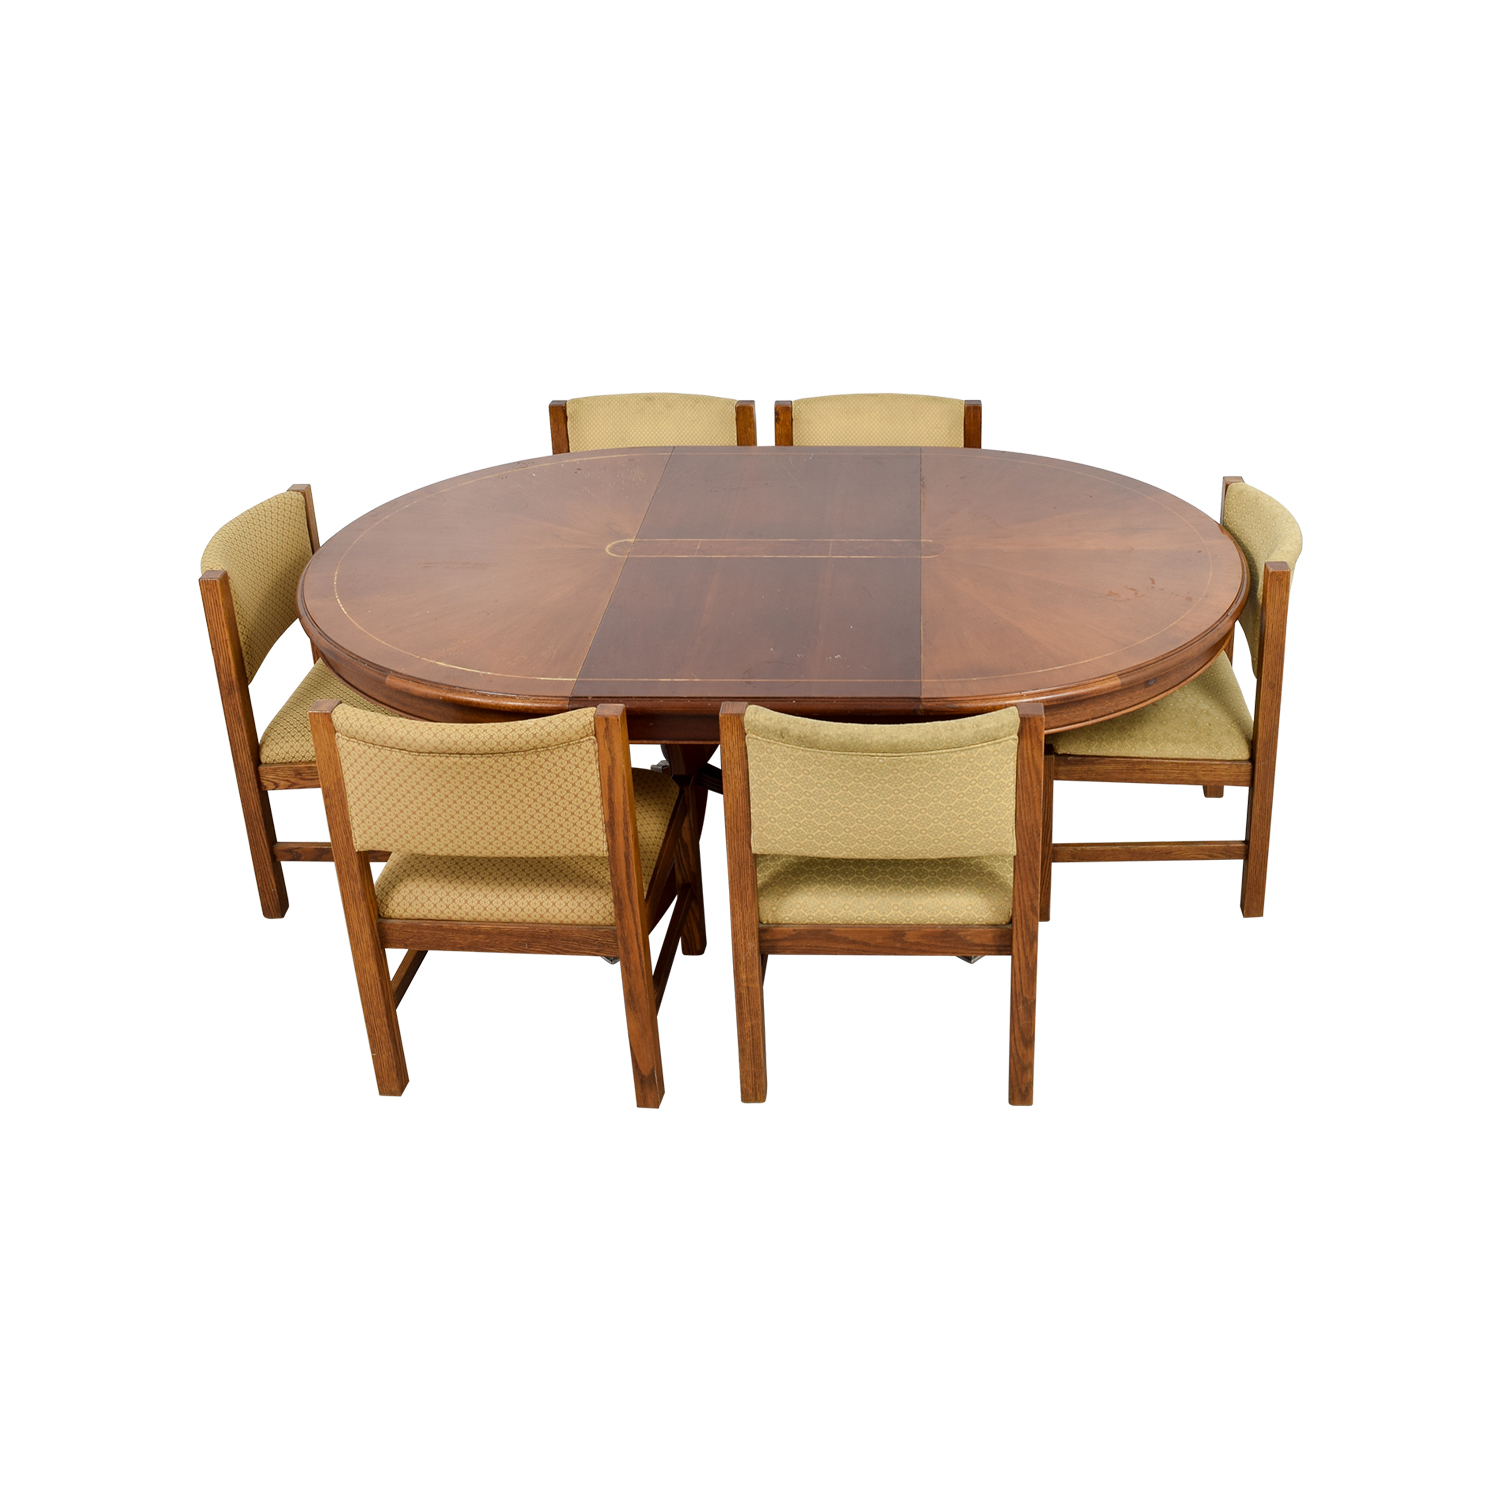 90 off pottery barn pottery barn yellow dining set tables. Black Bedroom Furniture Sets. Home Design Ideas